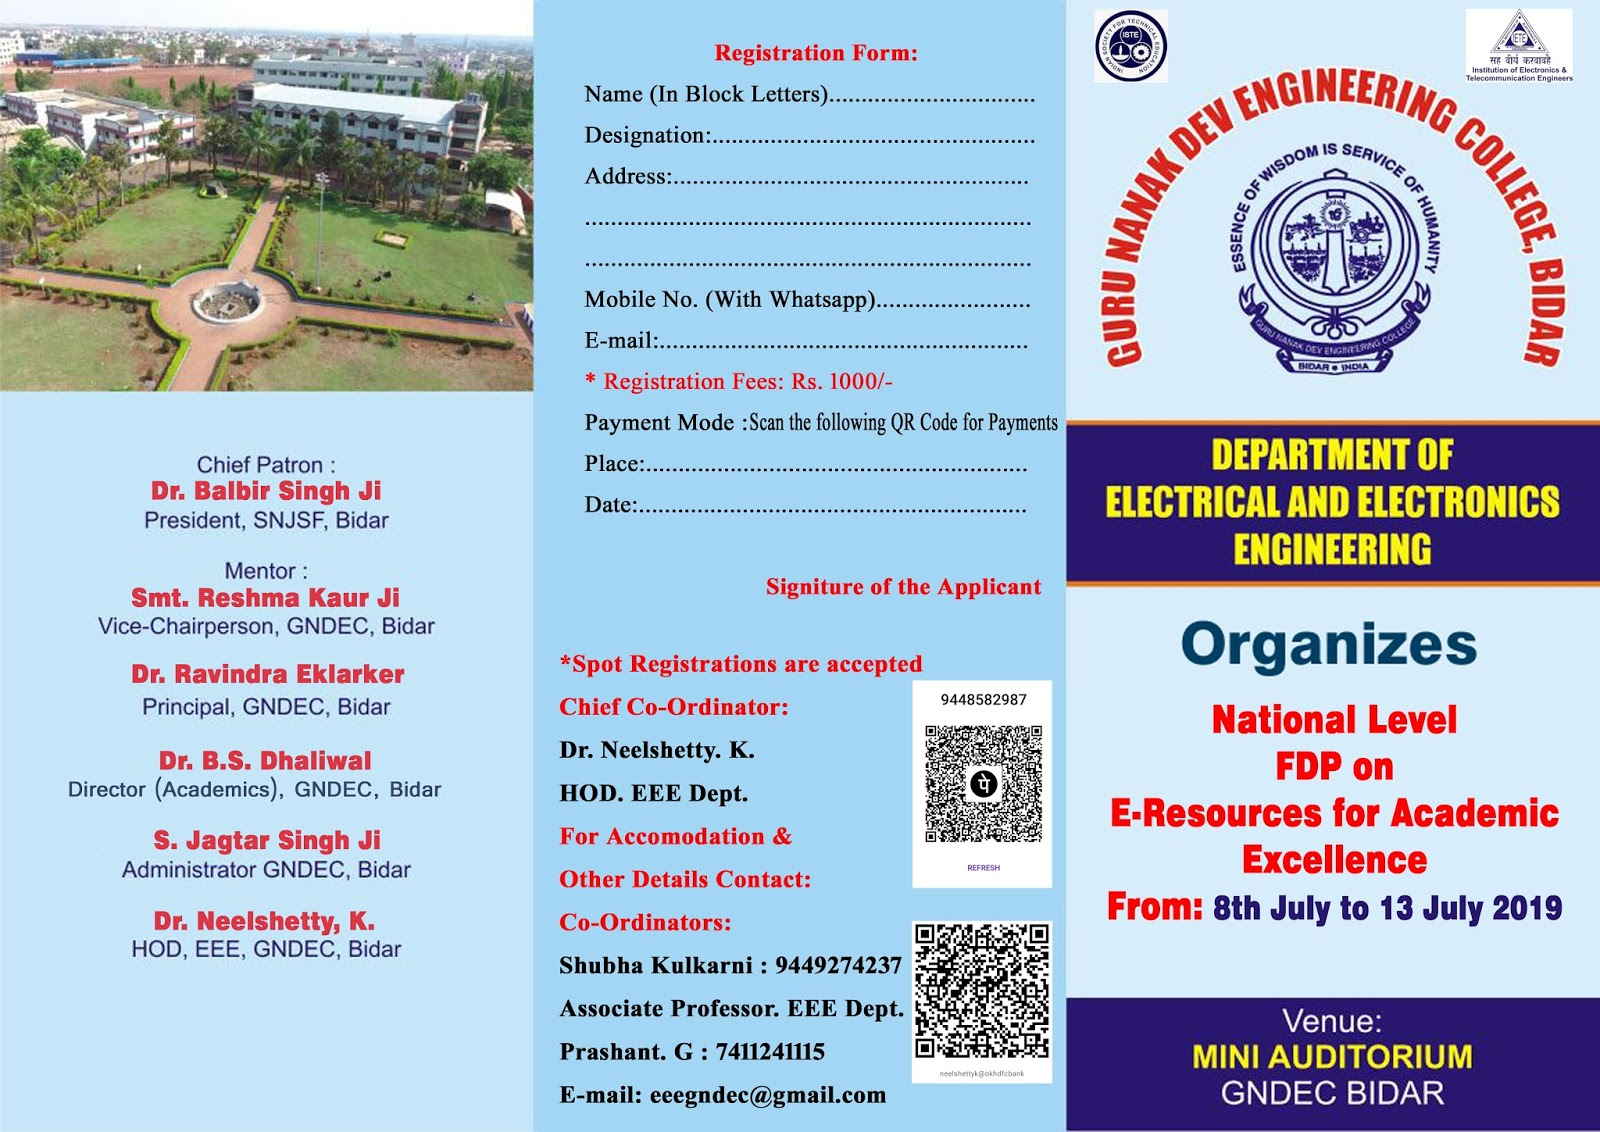 National Level FDP on E-Resources for Academic Excellence